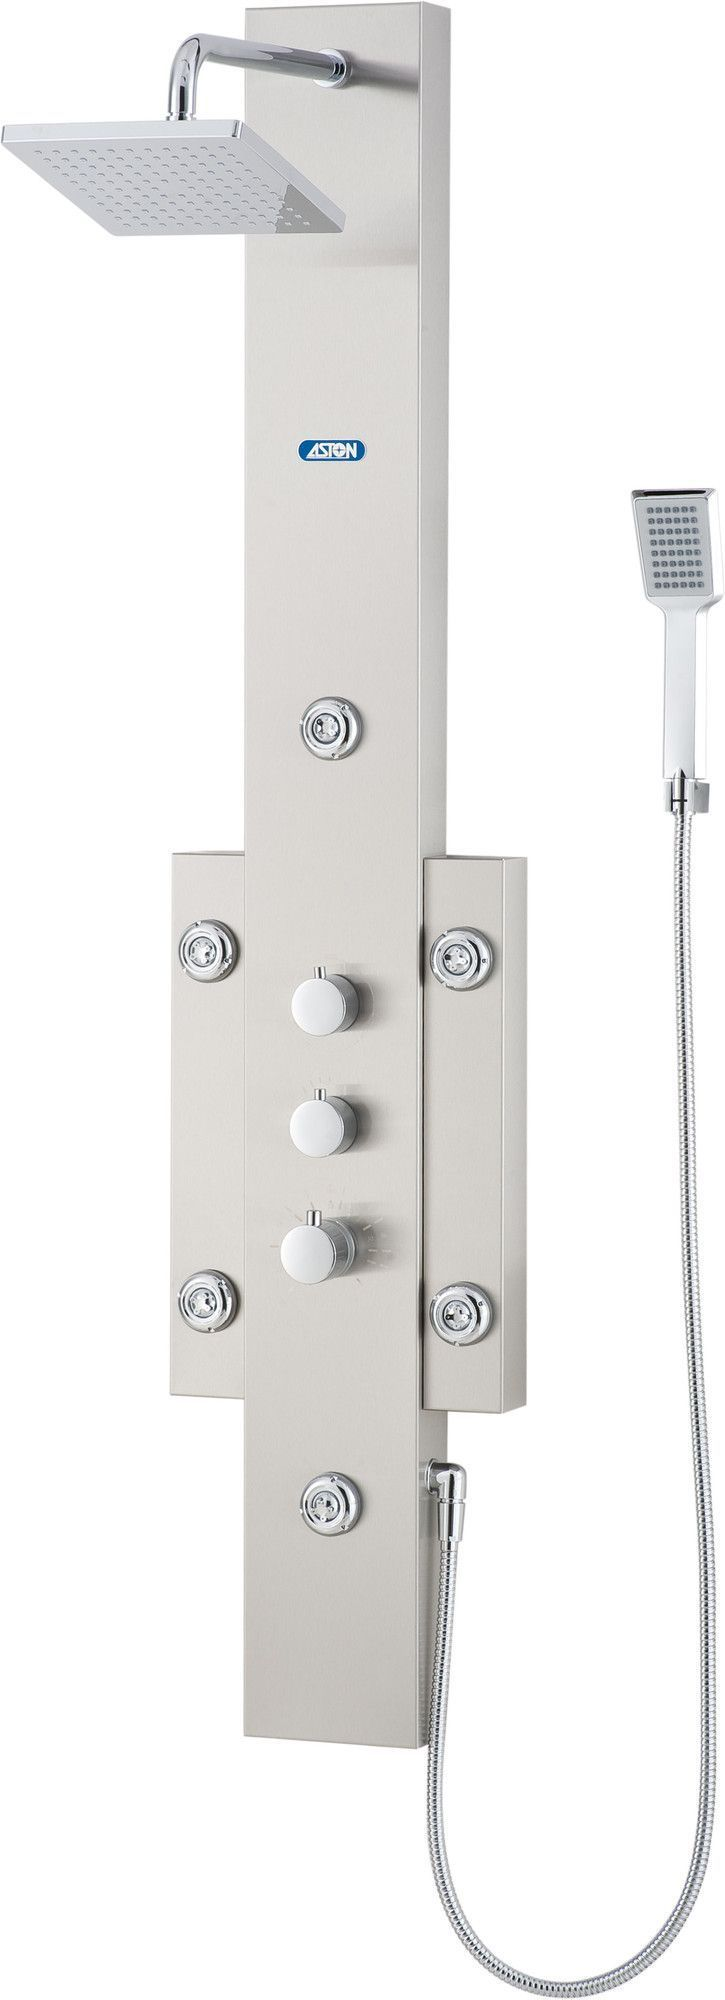 Dual Function Shower Panel With Six Body Jets